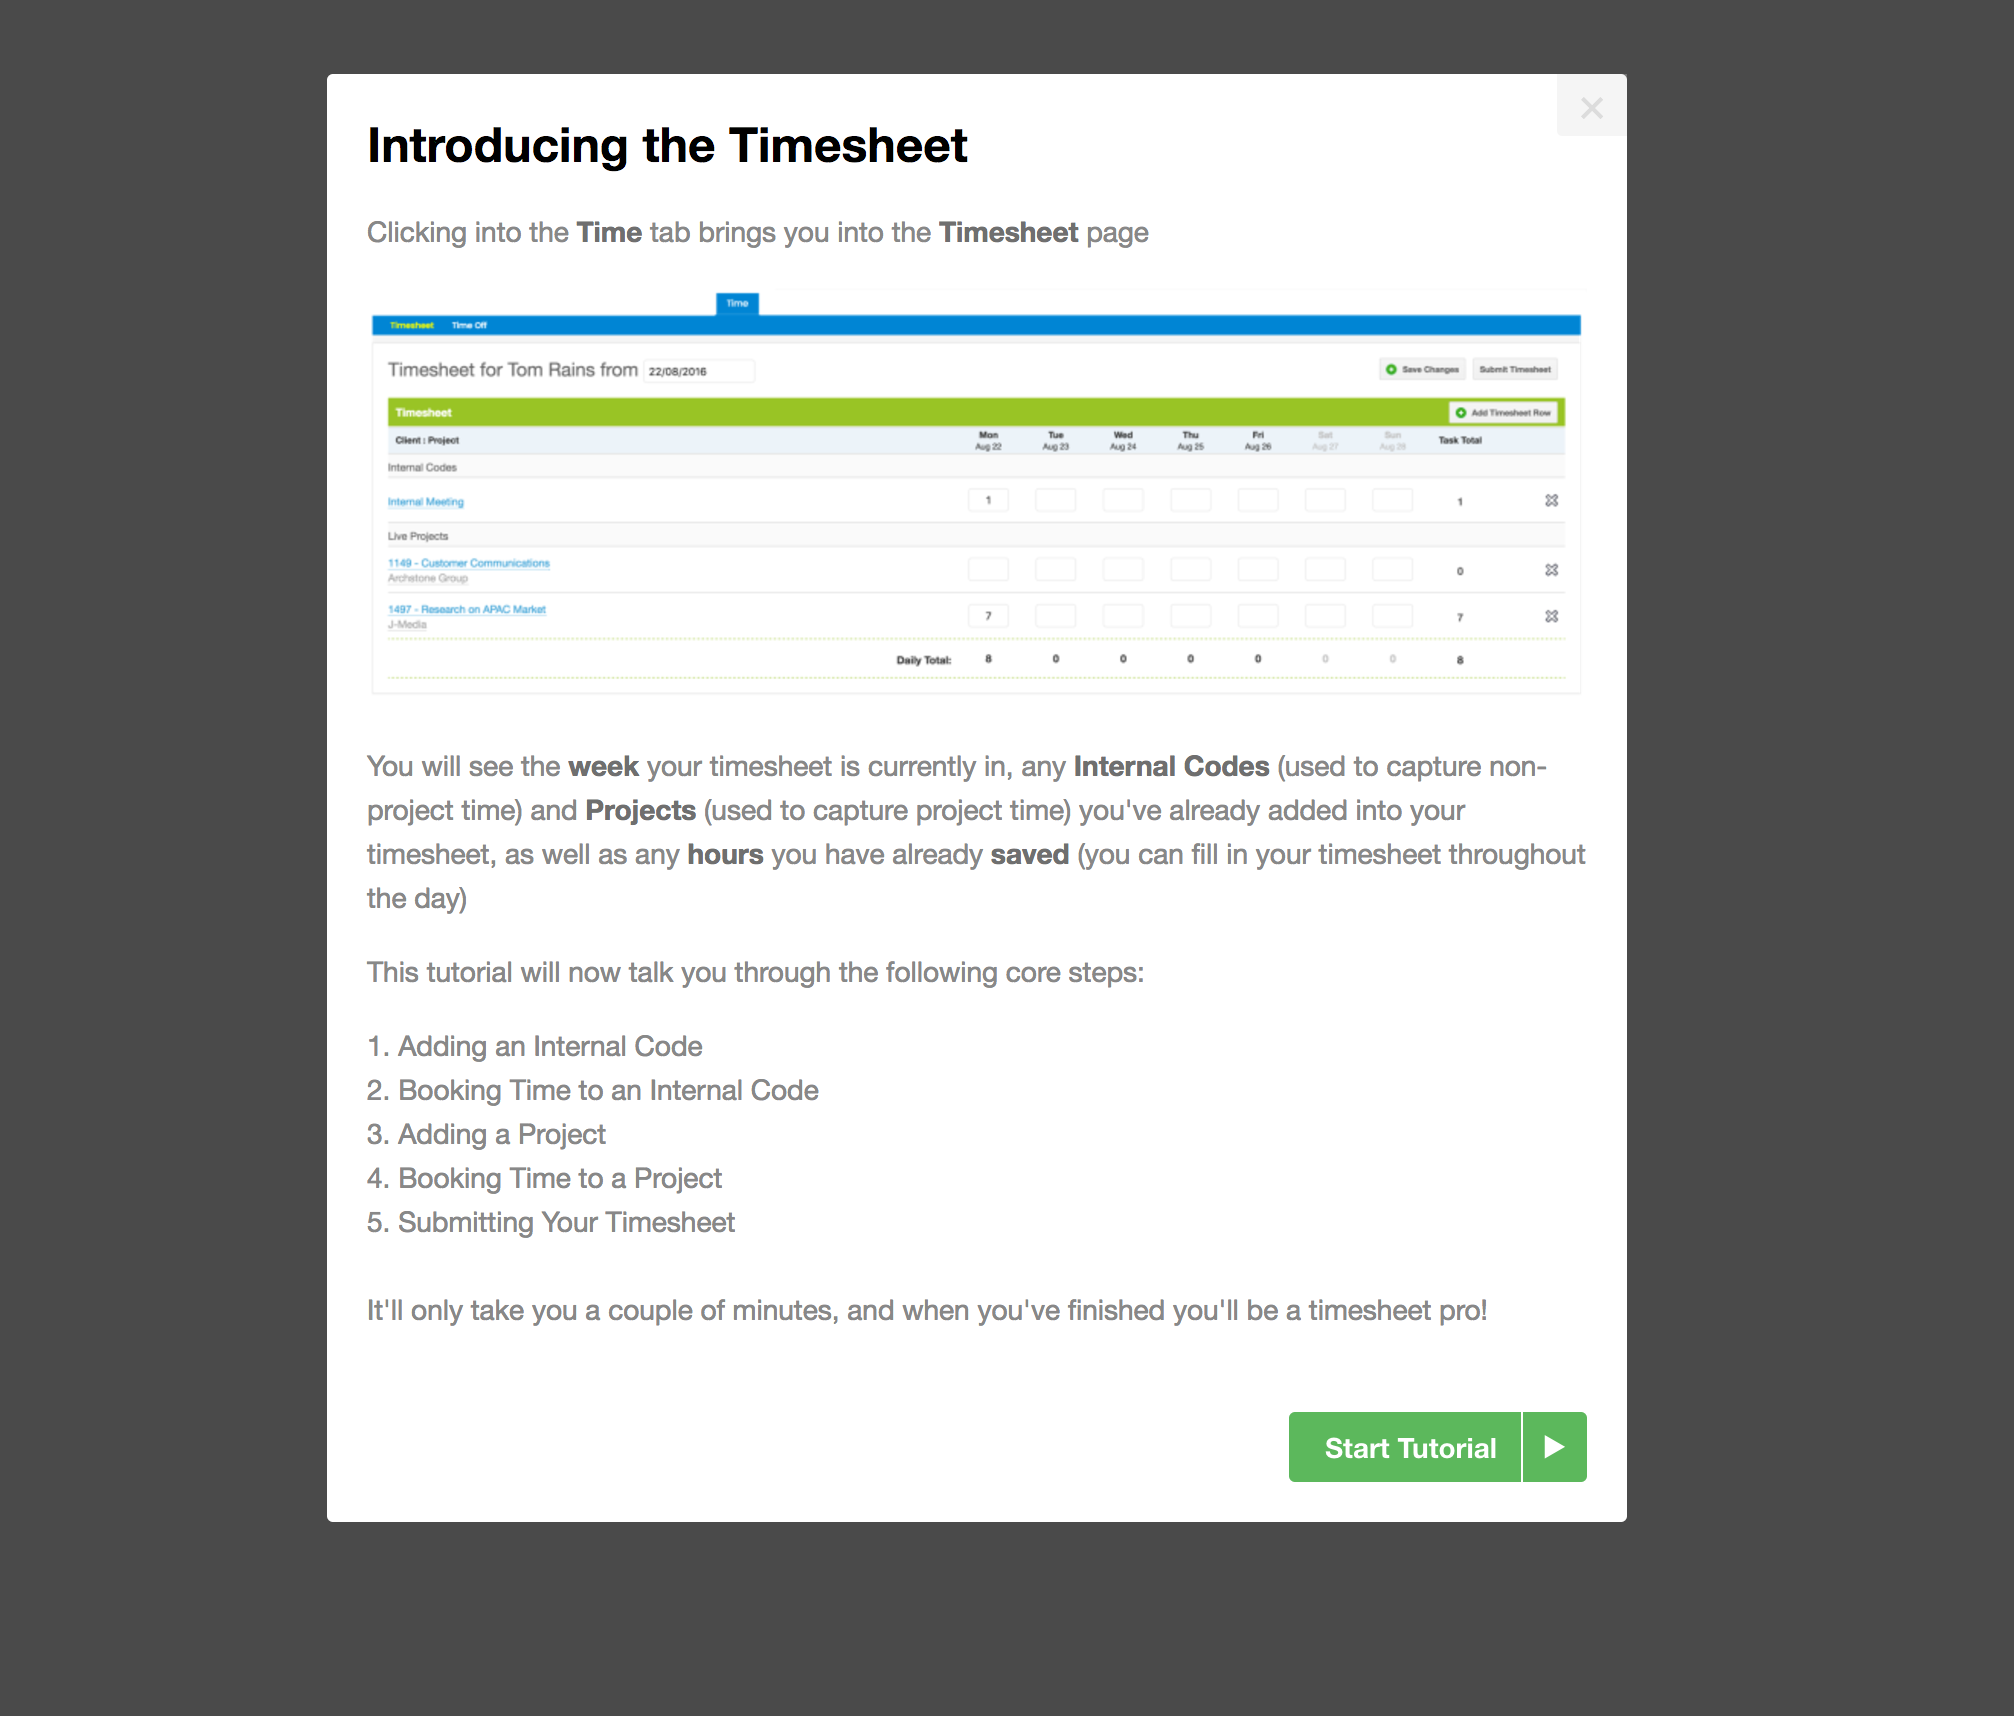 cmap-timesheet-new-feature-announcement-1.png